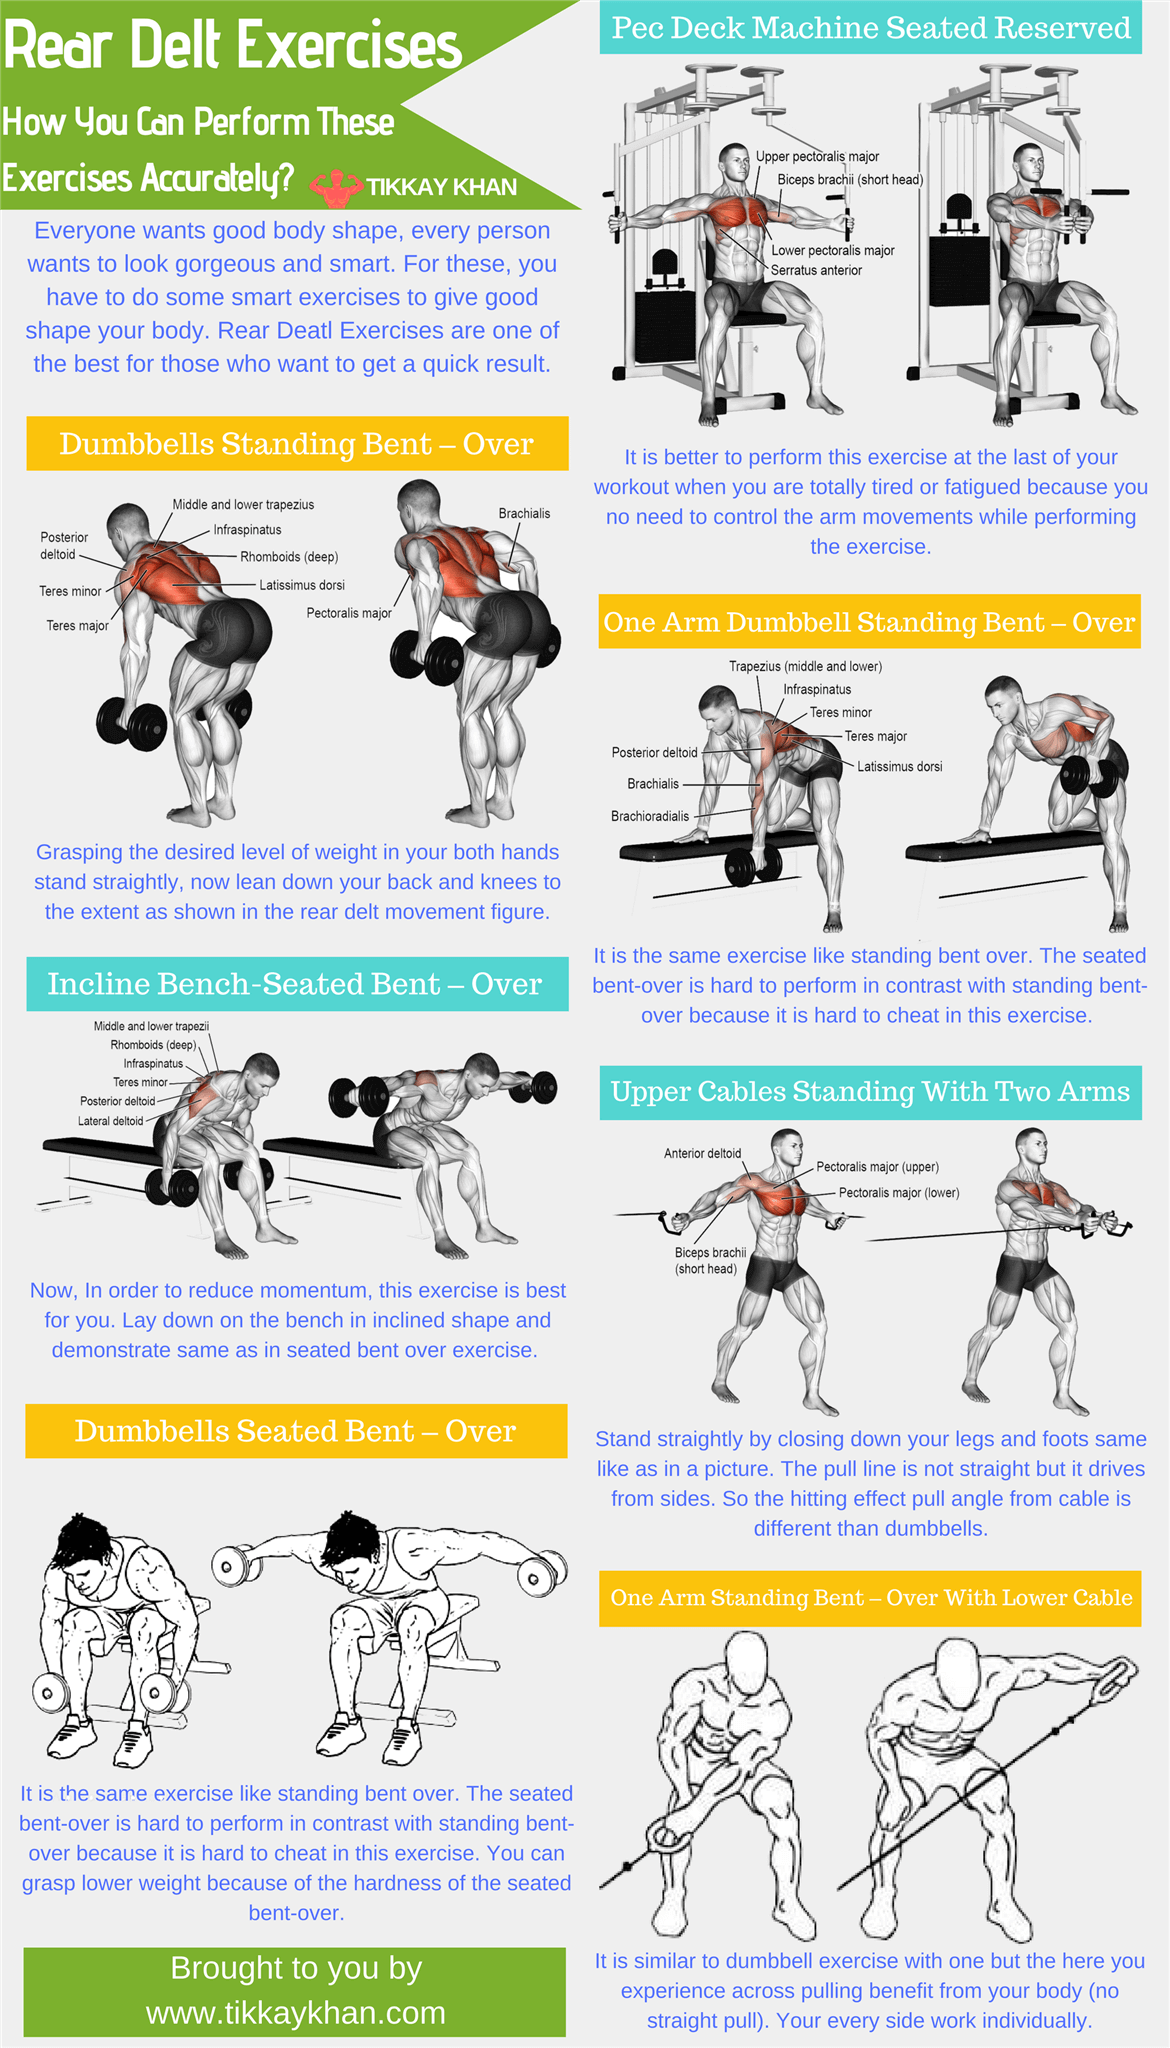 Rear Delt Exercises